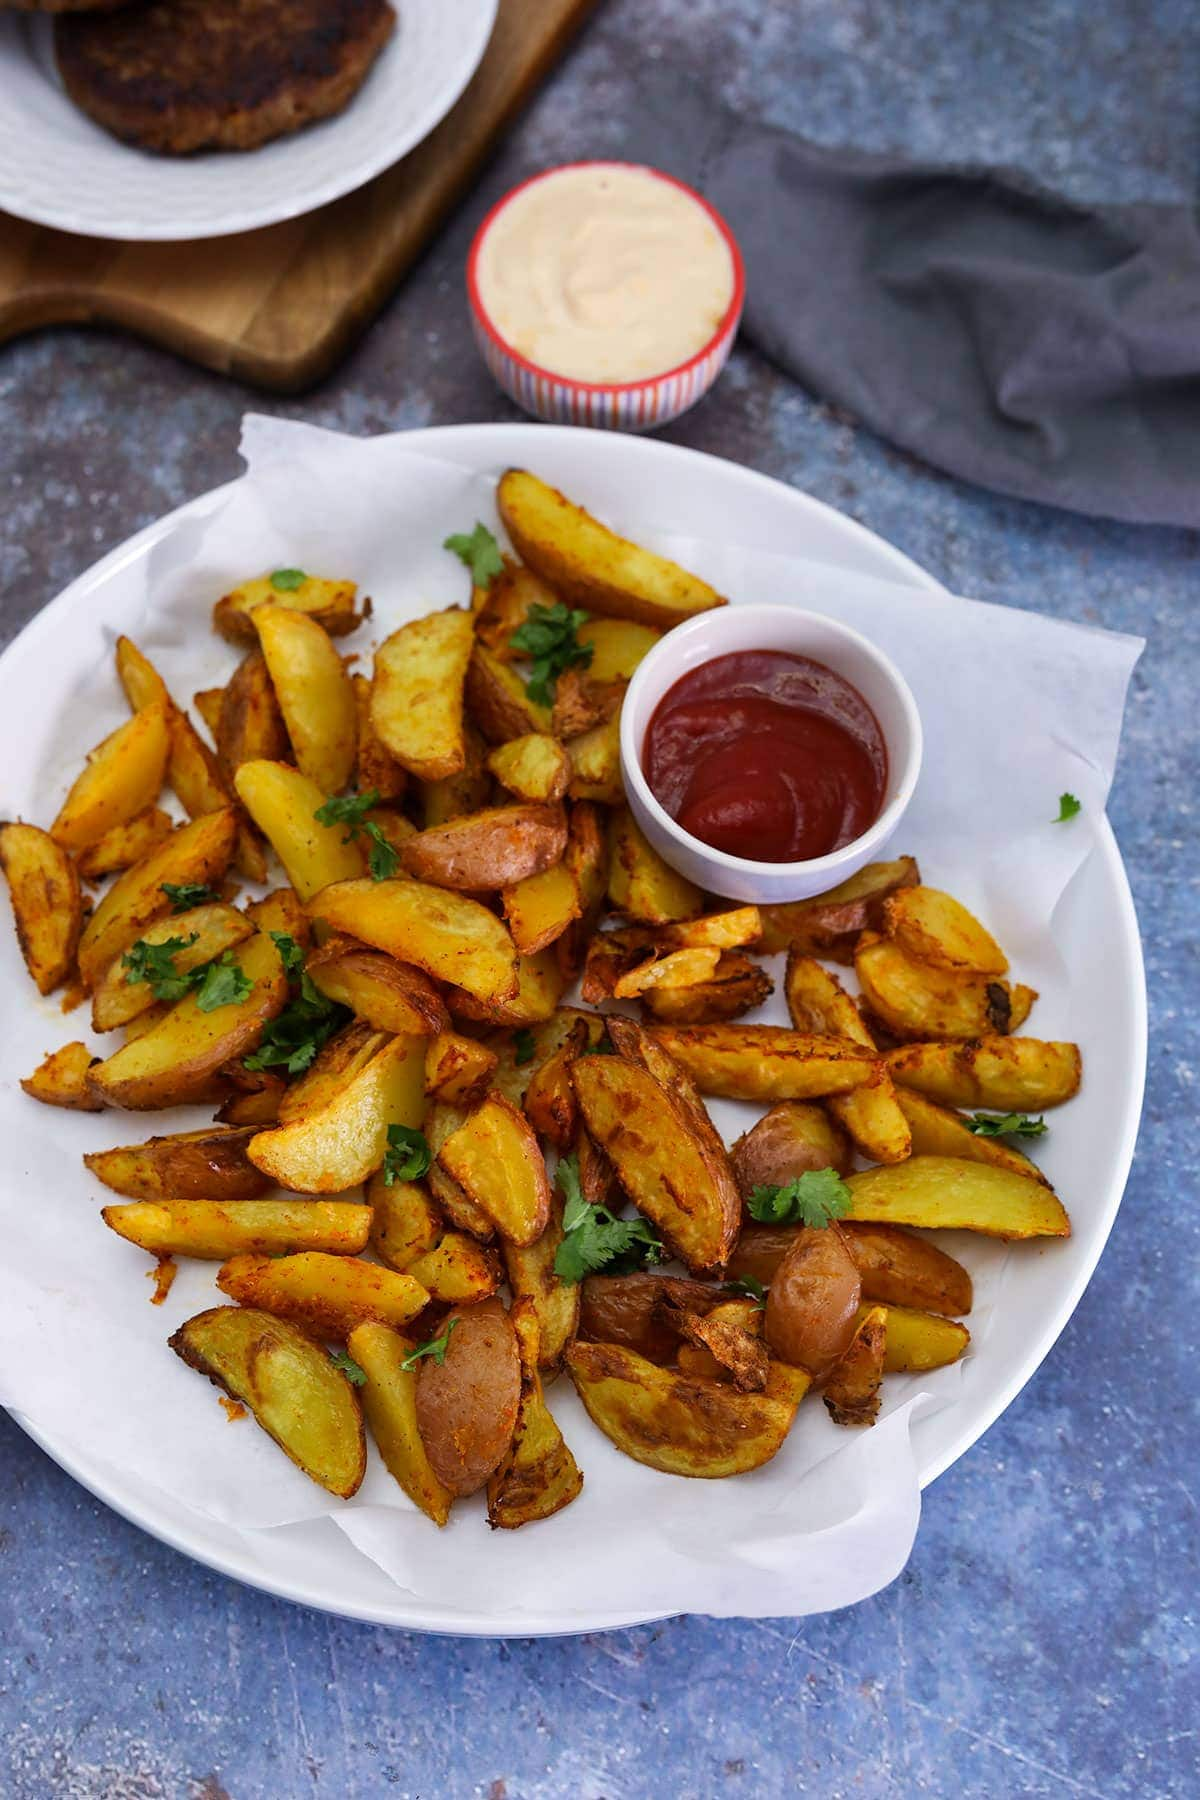 healthy air fryer fries on a white plate with ketchup and parsley for garnish